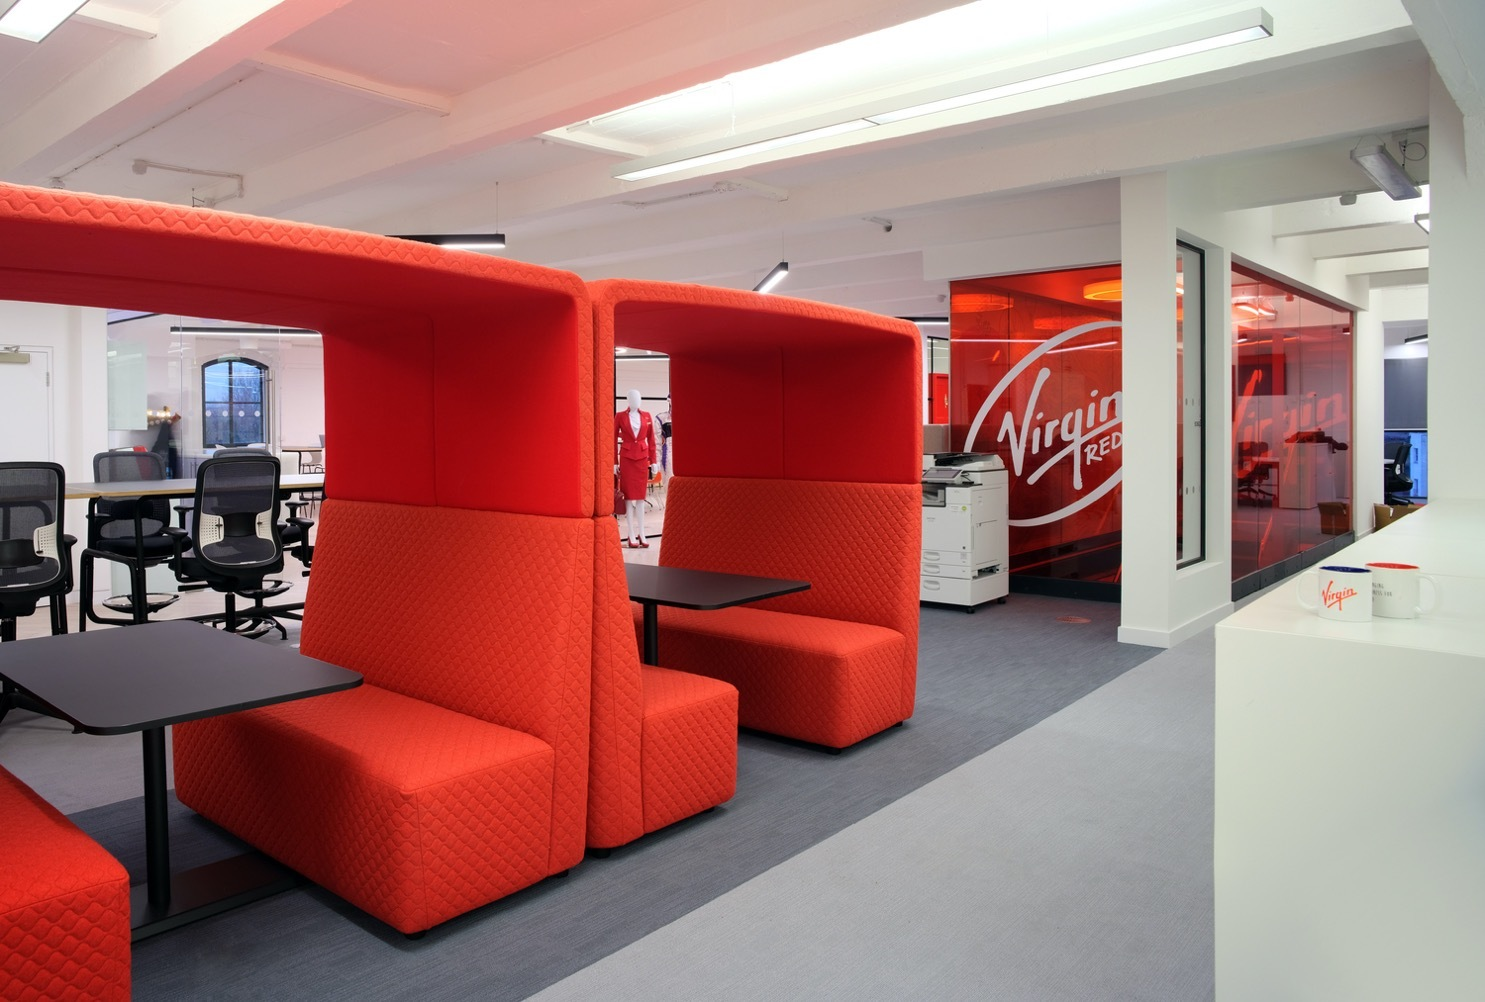 Virgin Red booths interior design for agile